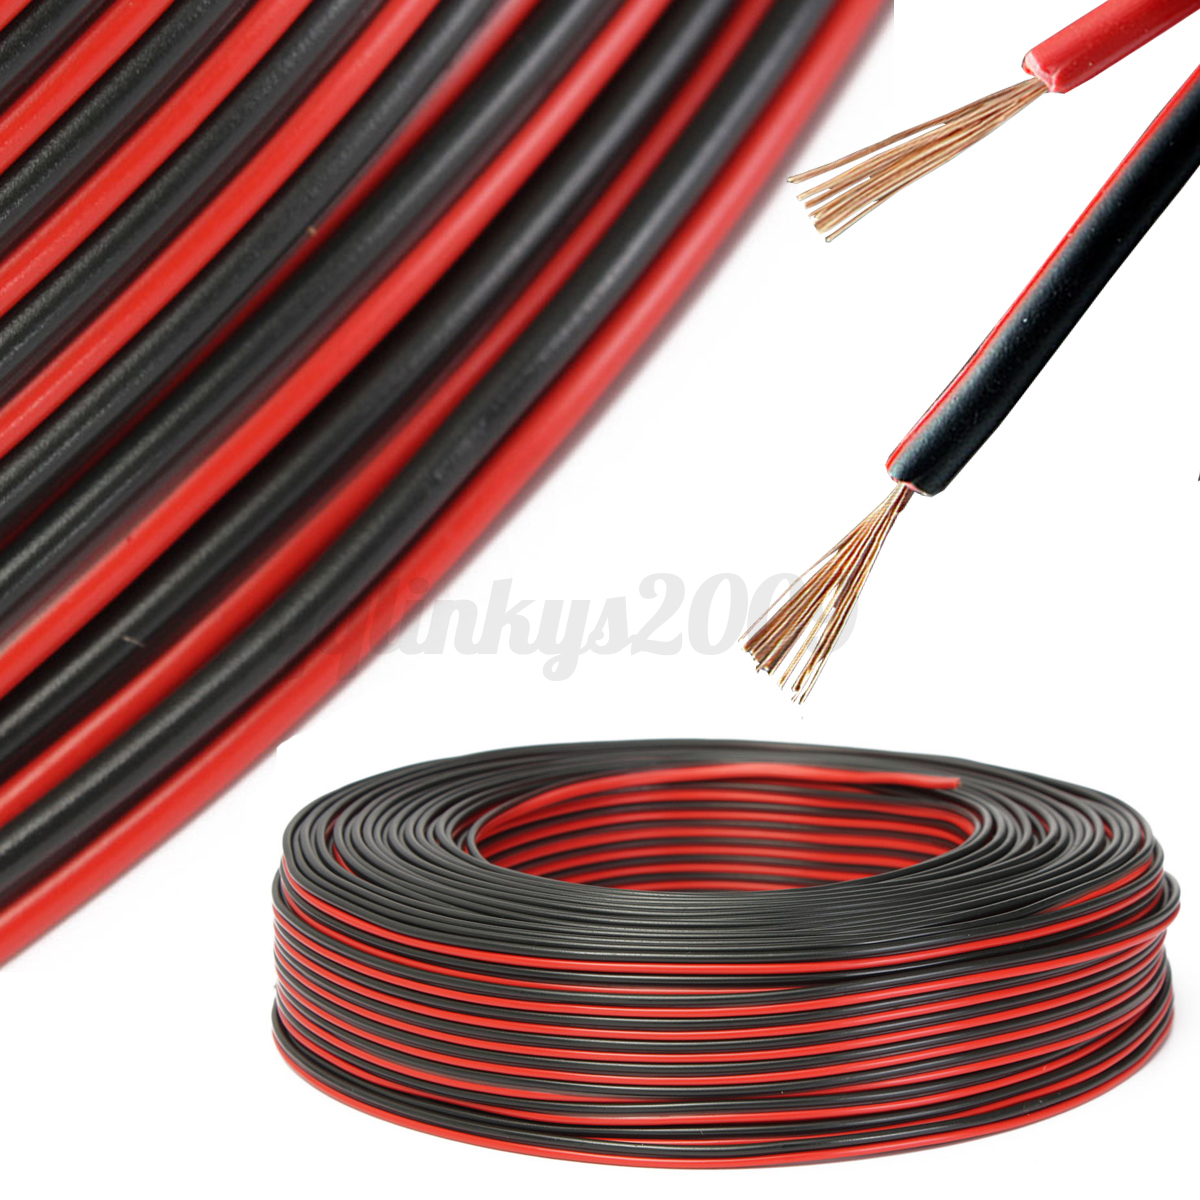 Speaker Wire In House : Heavy duty core speaker cable wire car home stereo hifi